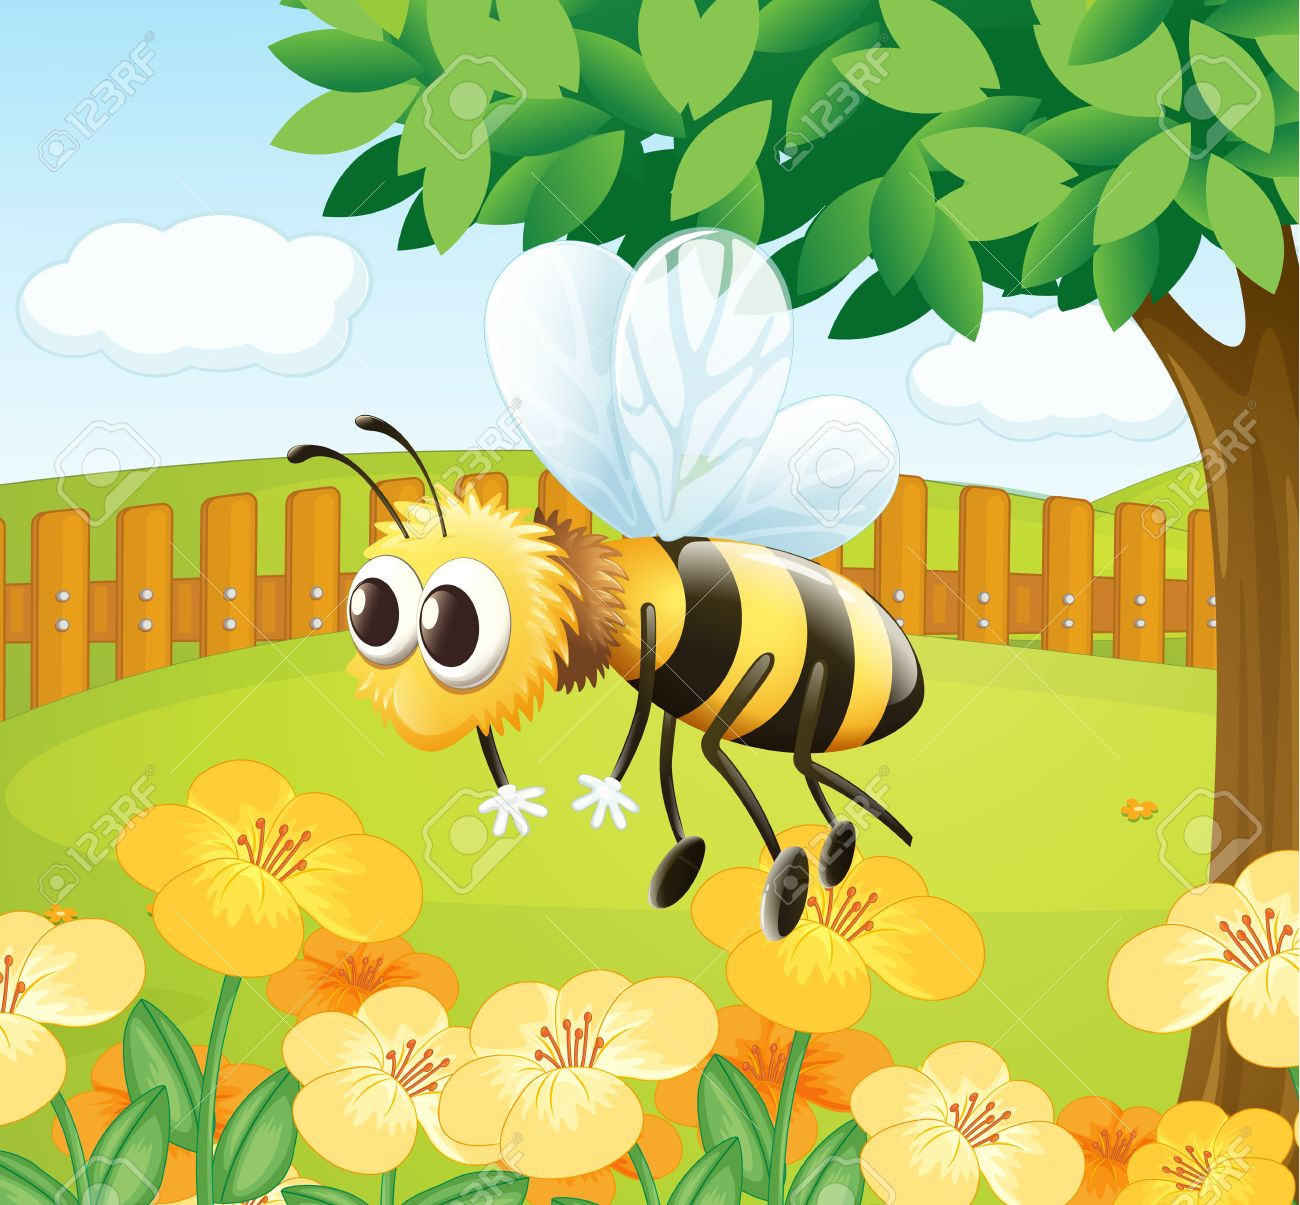 Illustration Of A Bee In A Fenced Garden Royalty Free Cliparts ...